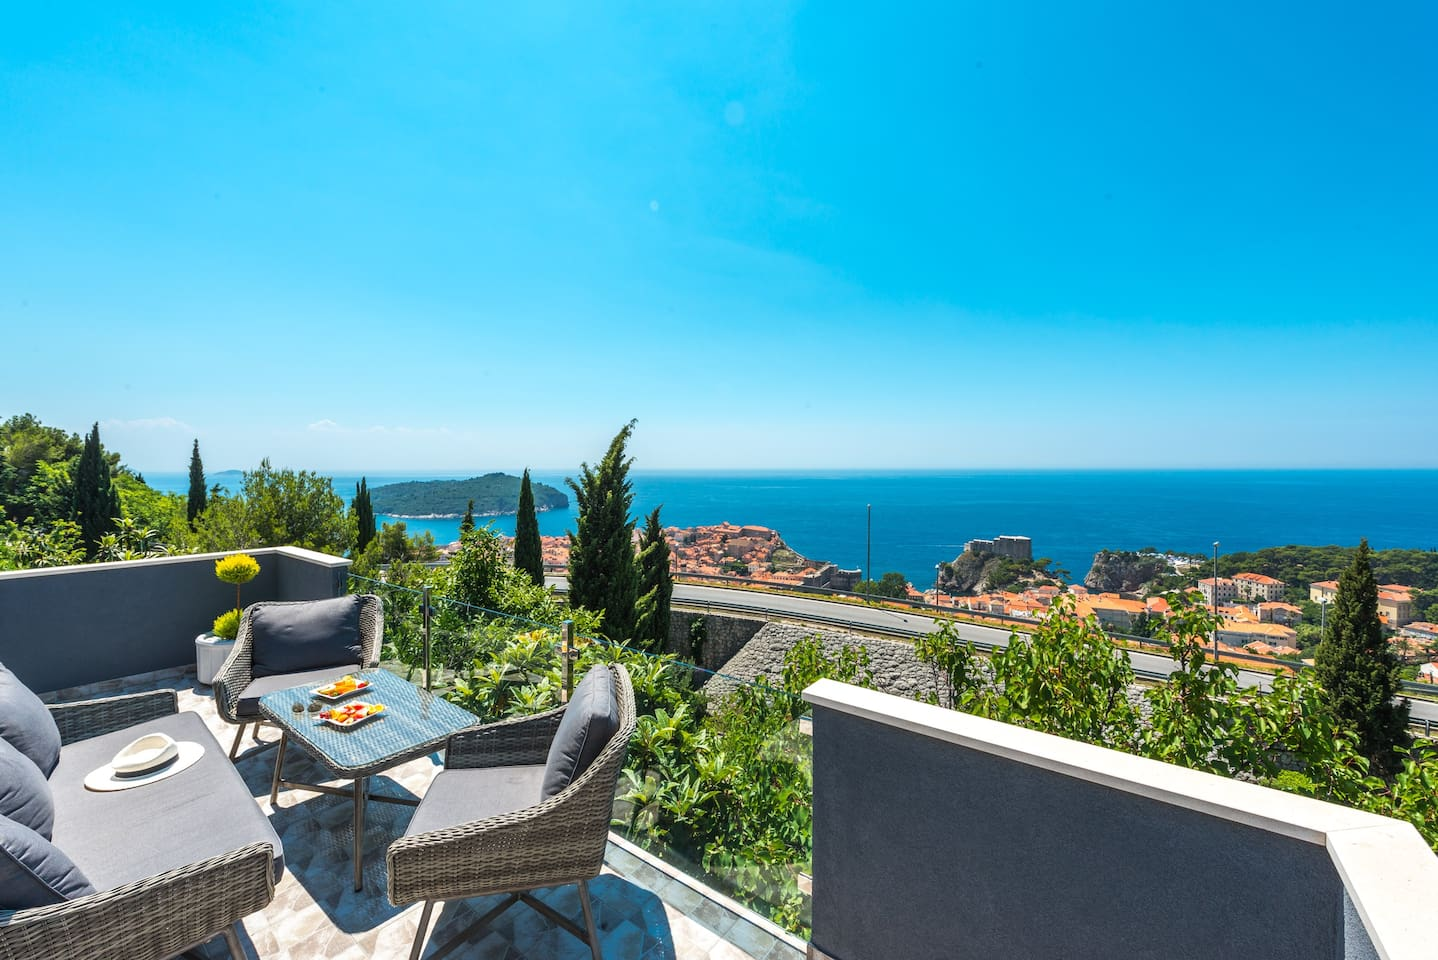 Clearview Apartment 4 - Dubrovnik - Apartments for Rent in Dubrovnik ...